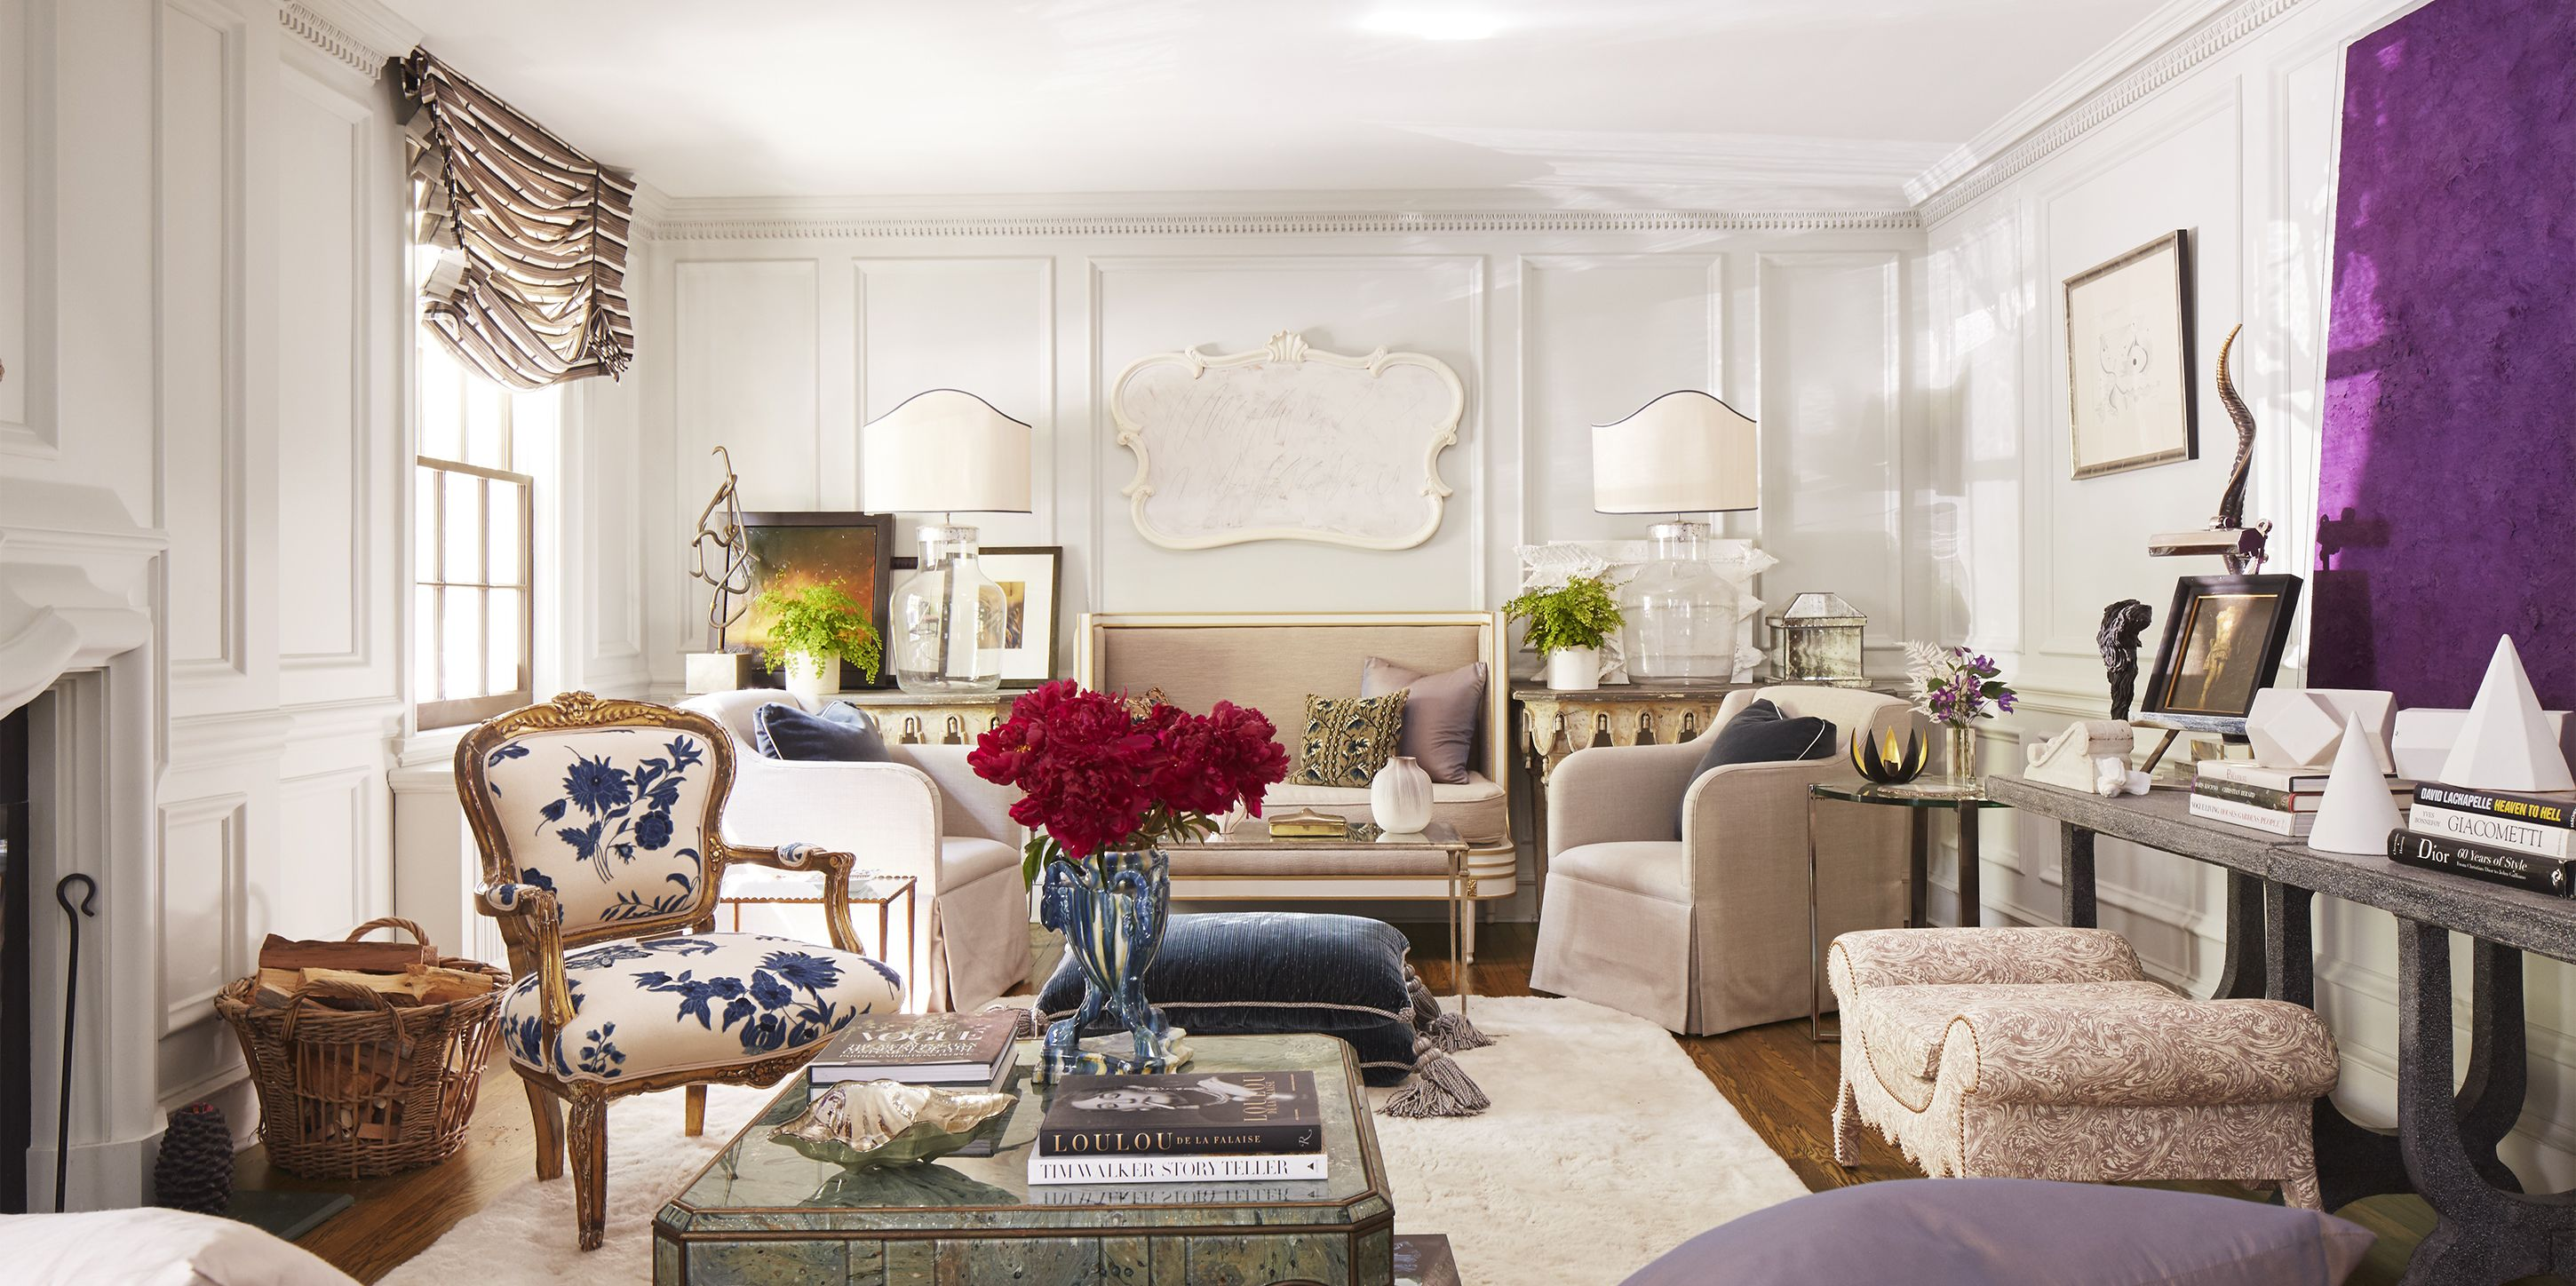 Living Home Zeitschrift luxury design ideas and home decorating tips